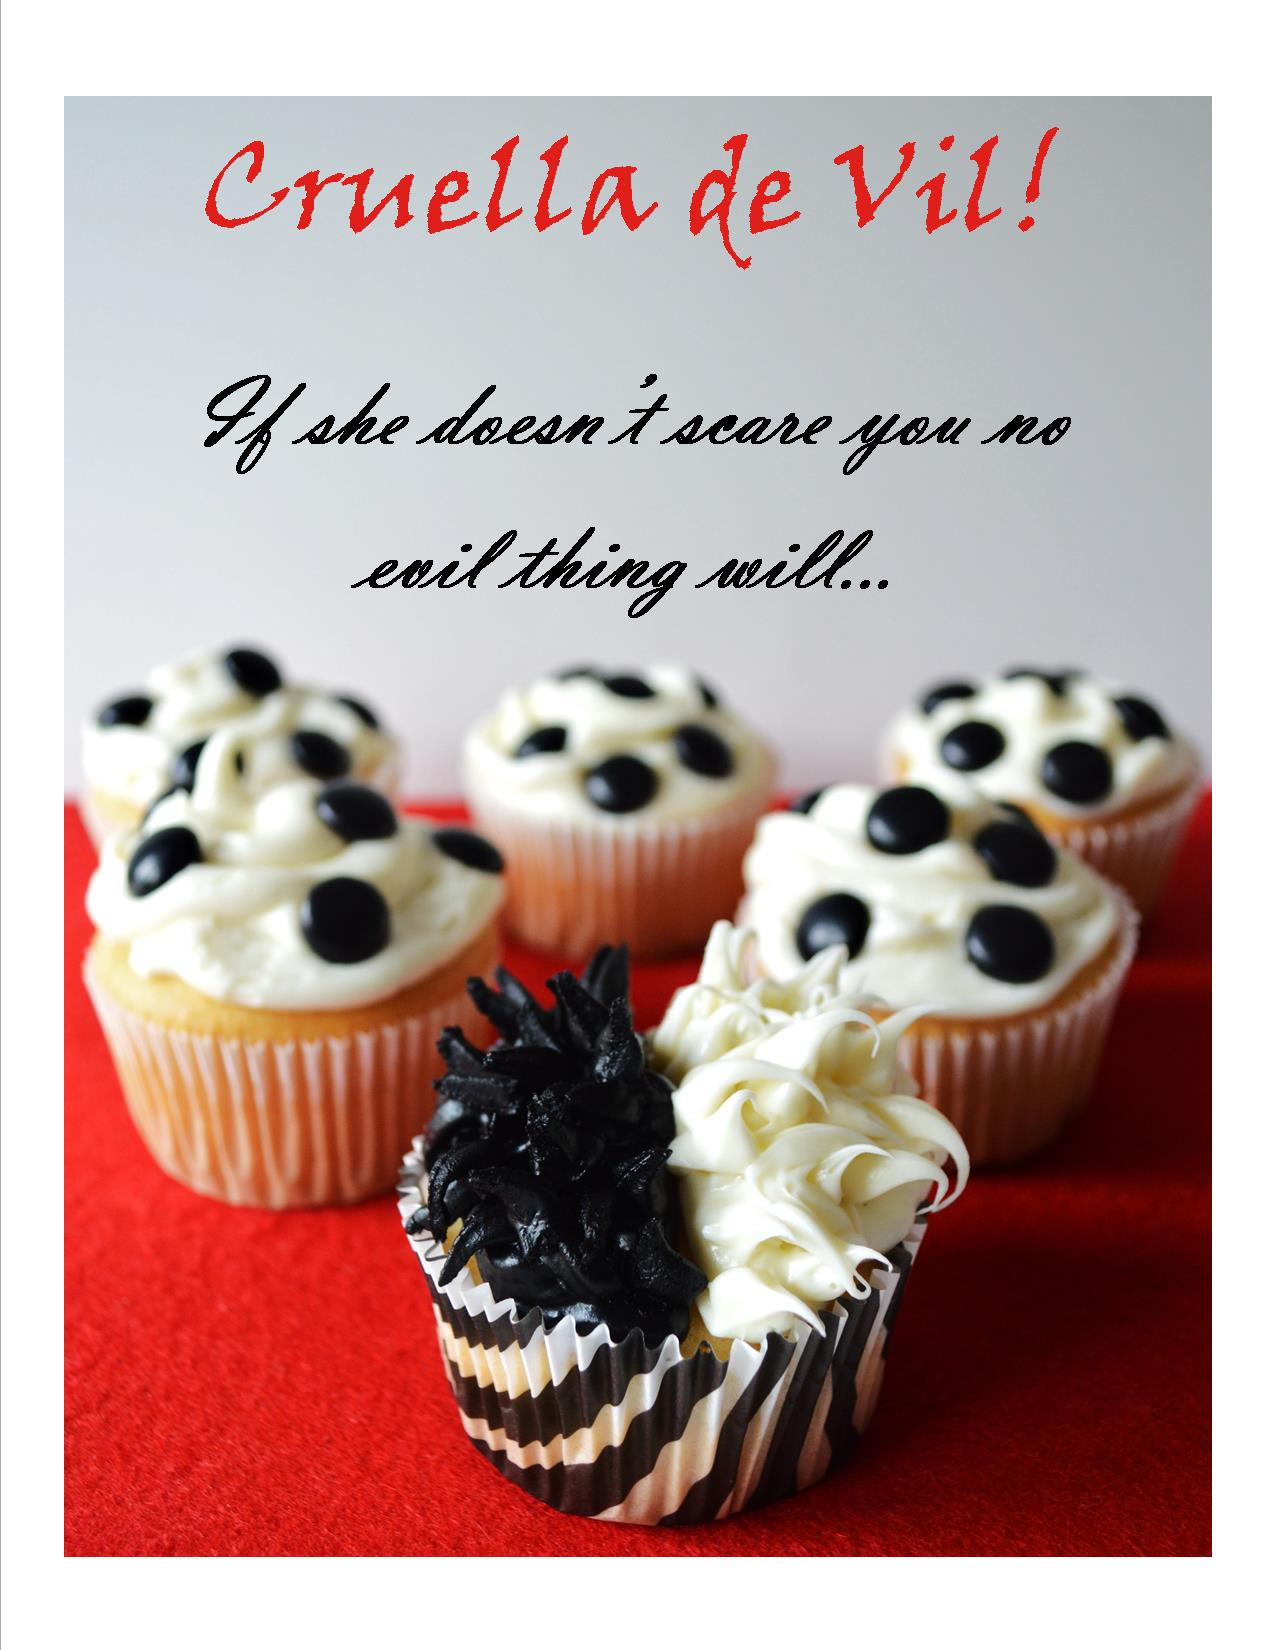 Disney Villain Cruella de Vil Cupcakes Mouse Ears Mom